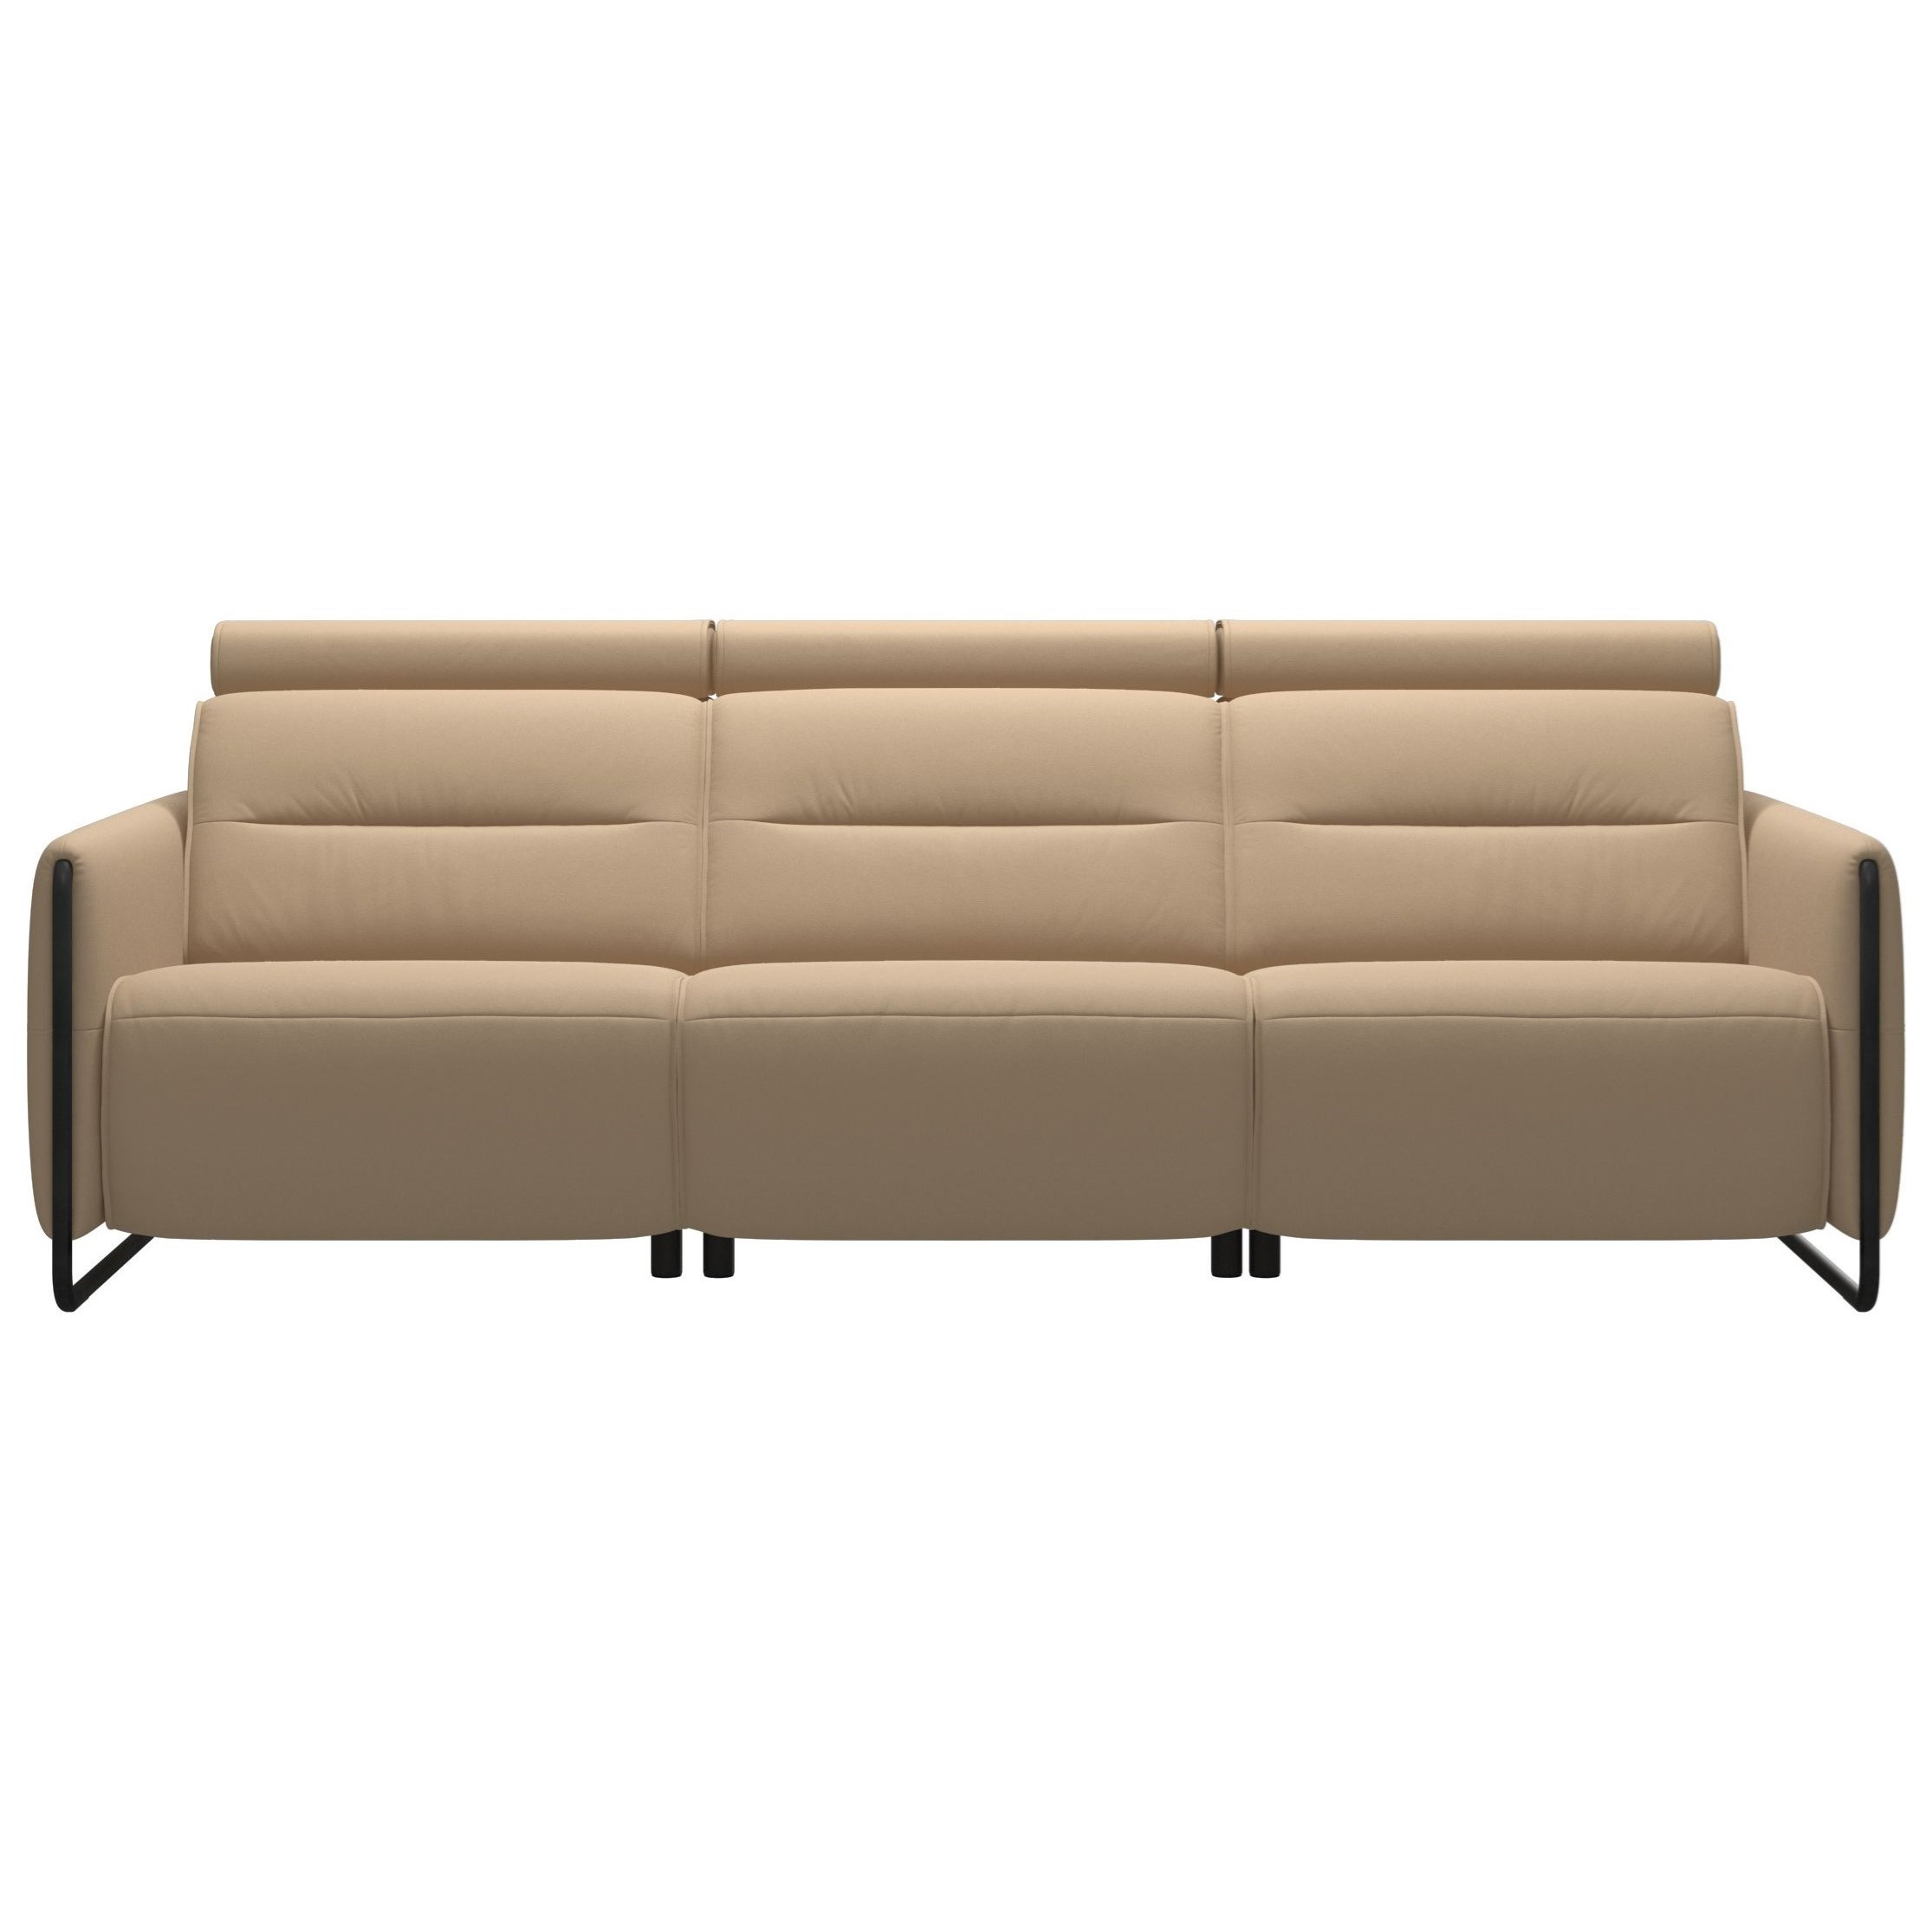 Emily Power 3-Seat Sofa with Steel Arms by Stressless at Fashion Furniture